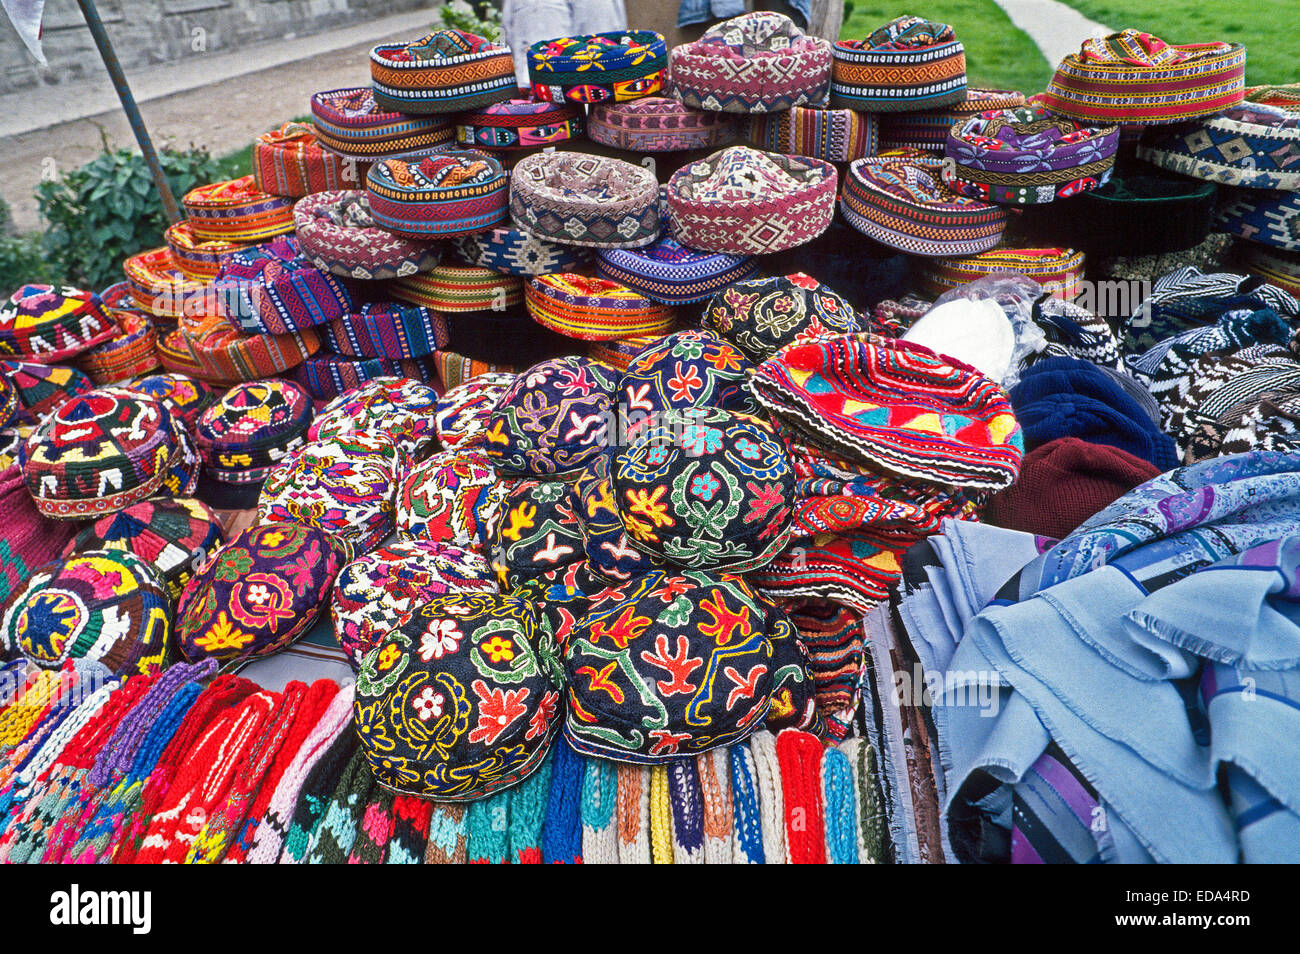 Very colorful knit caps and woven Turkish hats displayed at an outdoor market are mostly sold to tourists in Istanbul, - Stock Image